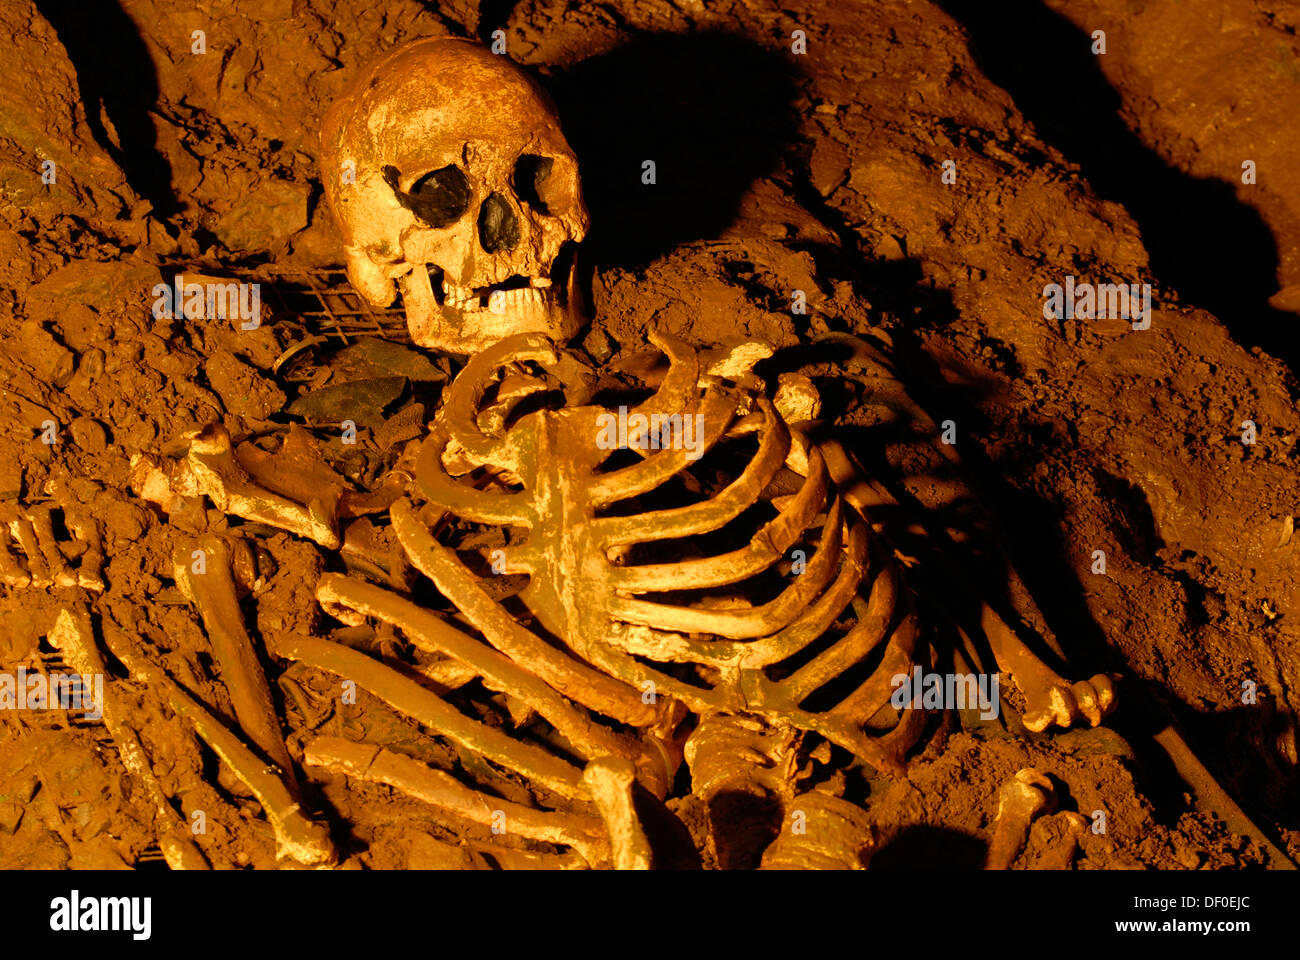 Skull and skeleton from the stone age, Cheddar Man Museum of Prehistory, Cheddar, Somerset, England, United Kingdom, Europe - Stock Image